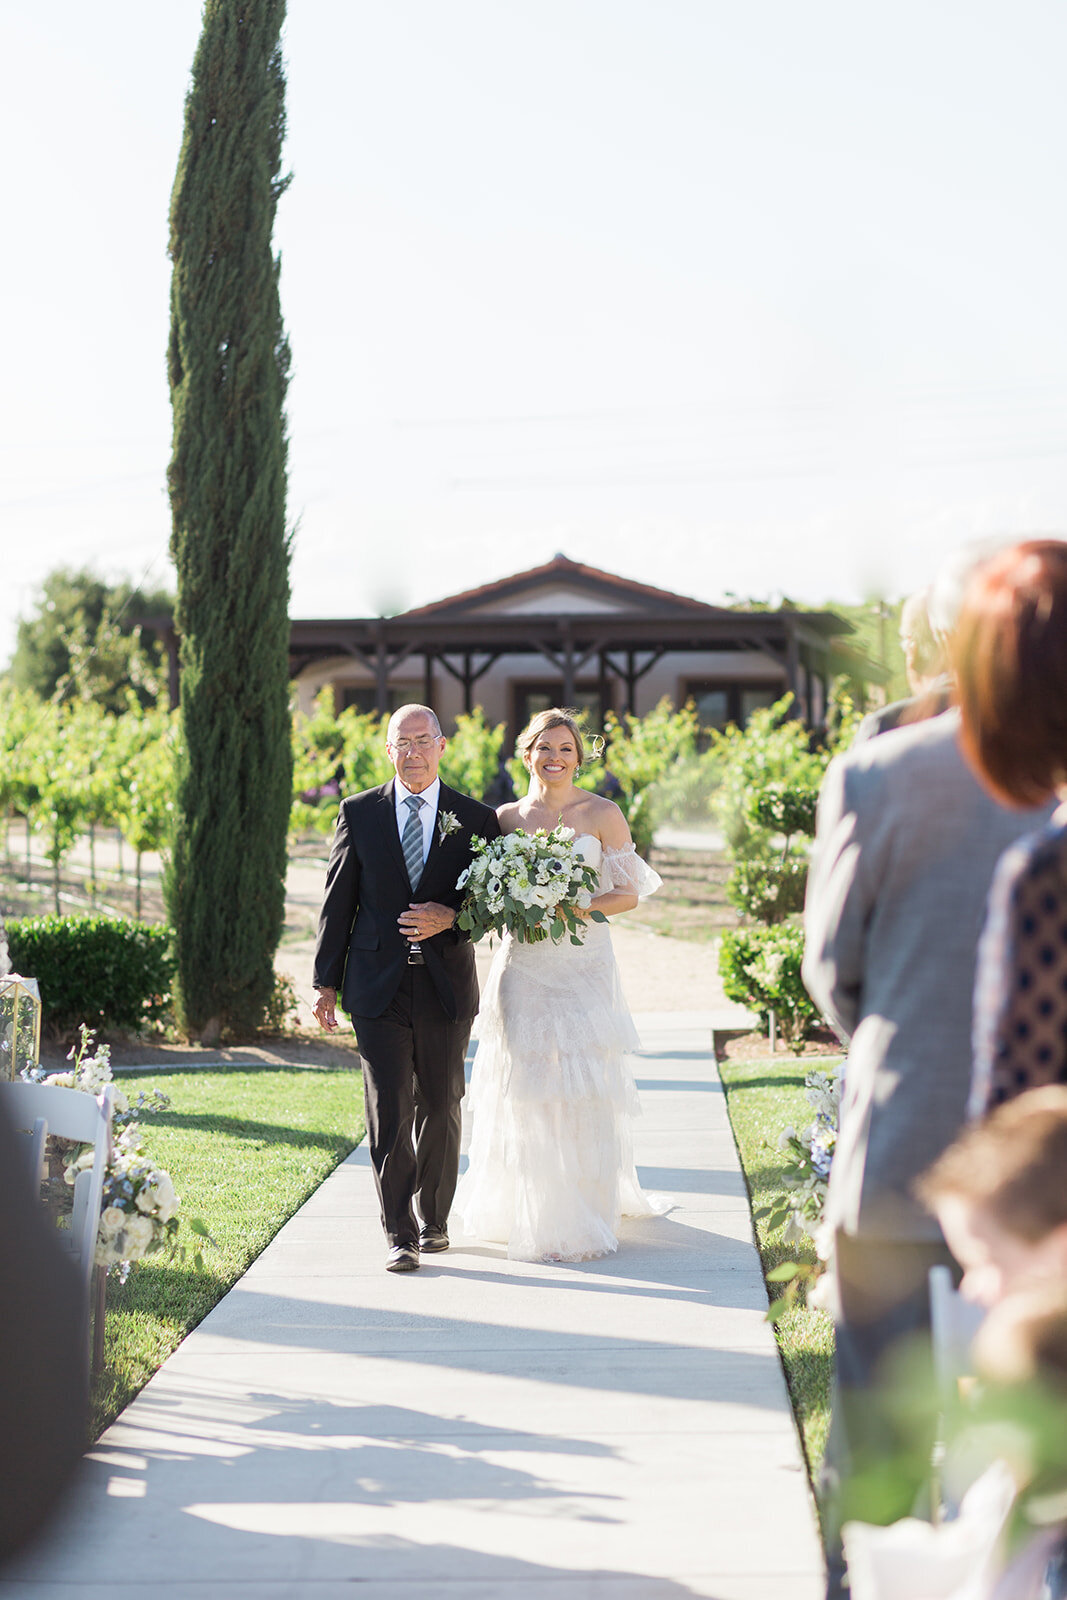 Avensole-Winery-Wedding-Photographer-34